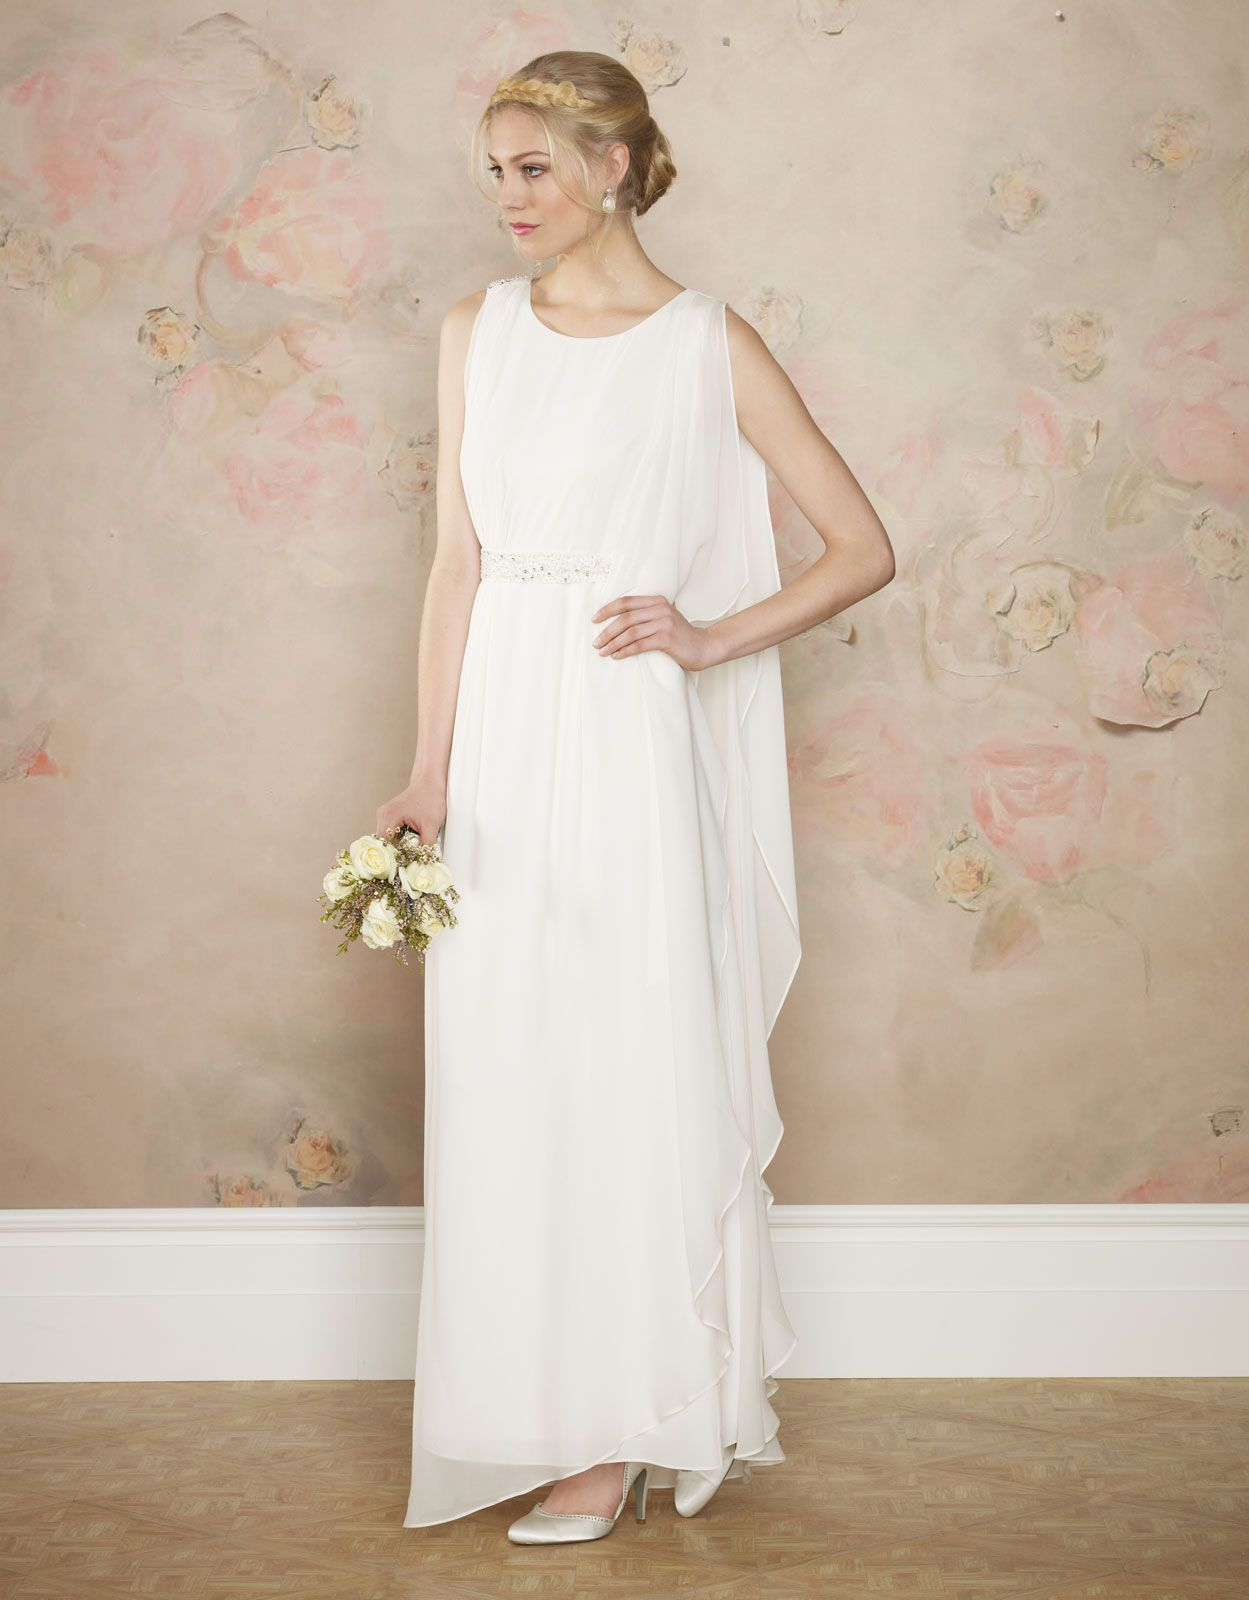 Beach wedding dress under 500  Pin by Marie Kemp on Happily Ever After  Pinterest  Wedding